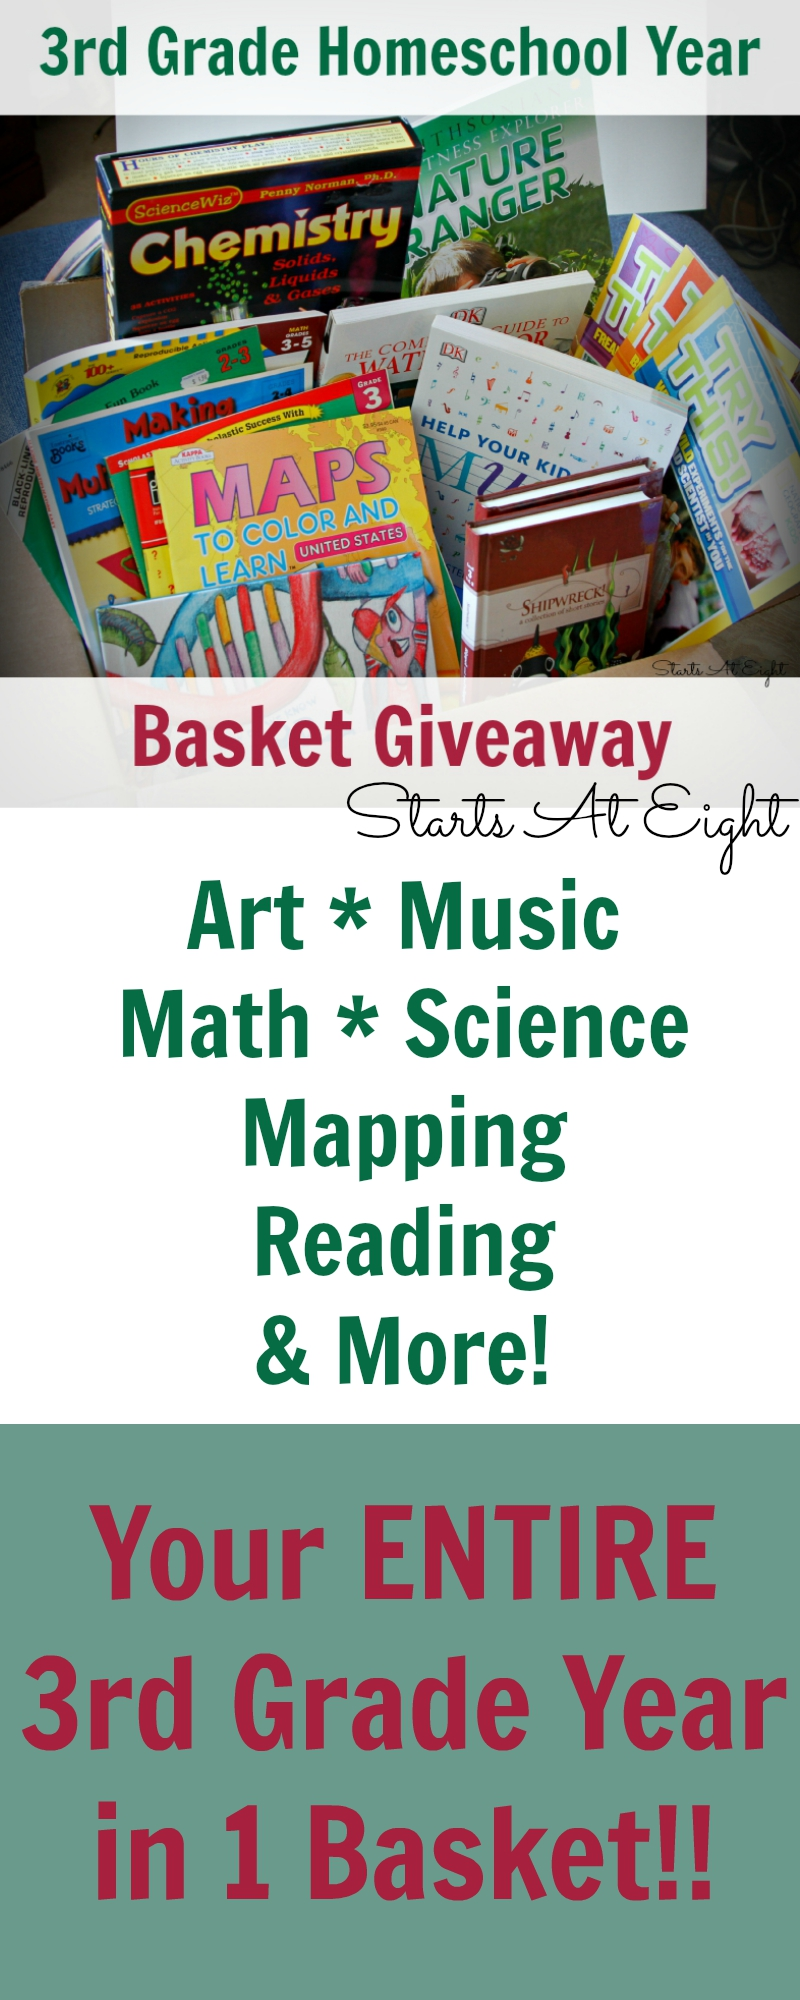 3rd Grade Homeschool Year in a Basket Giveaway from Starts At Eight